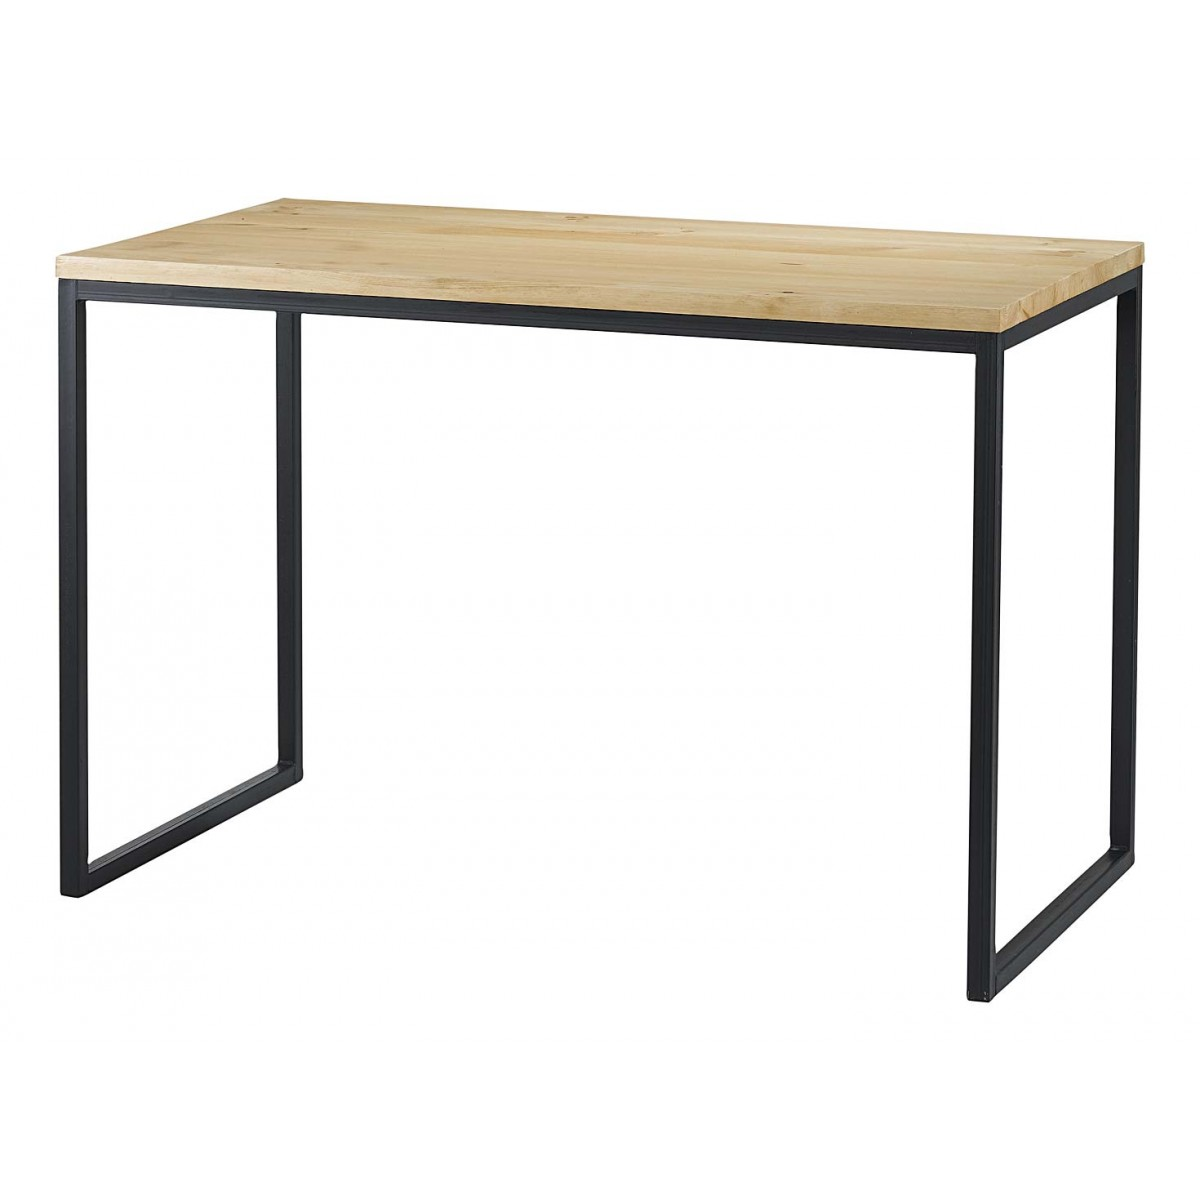 Table bureau bois et m tal 110 cm city mooviin for Table bois metal design